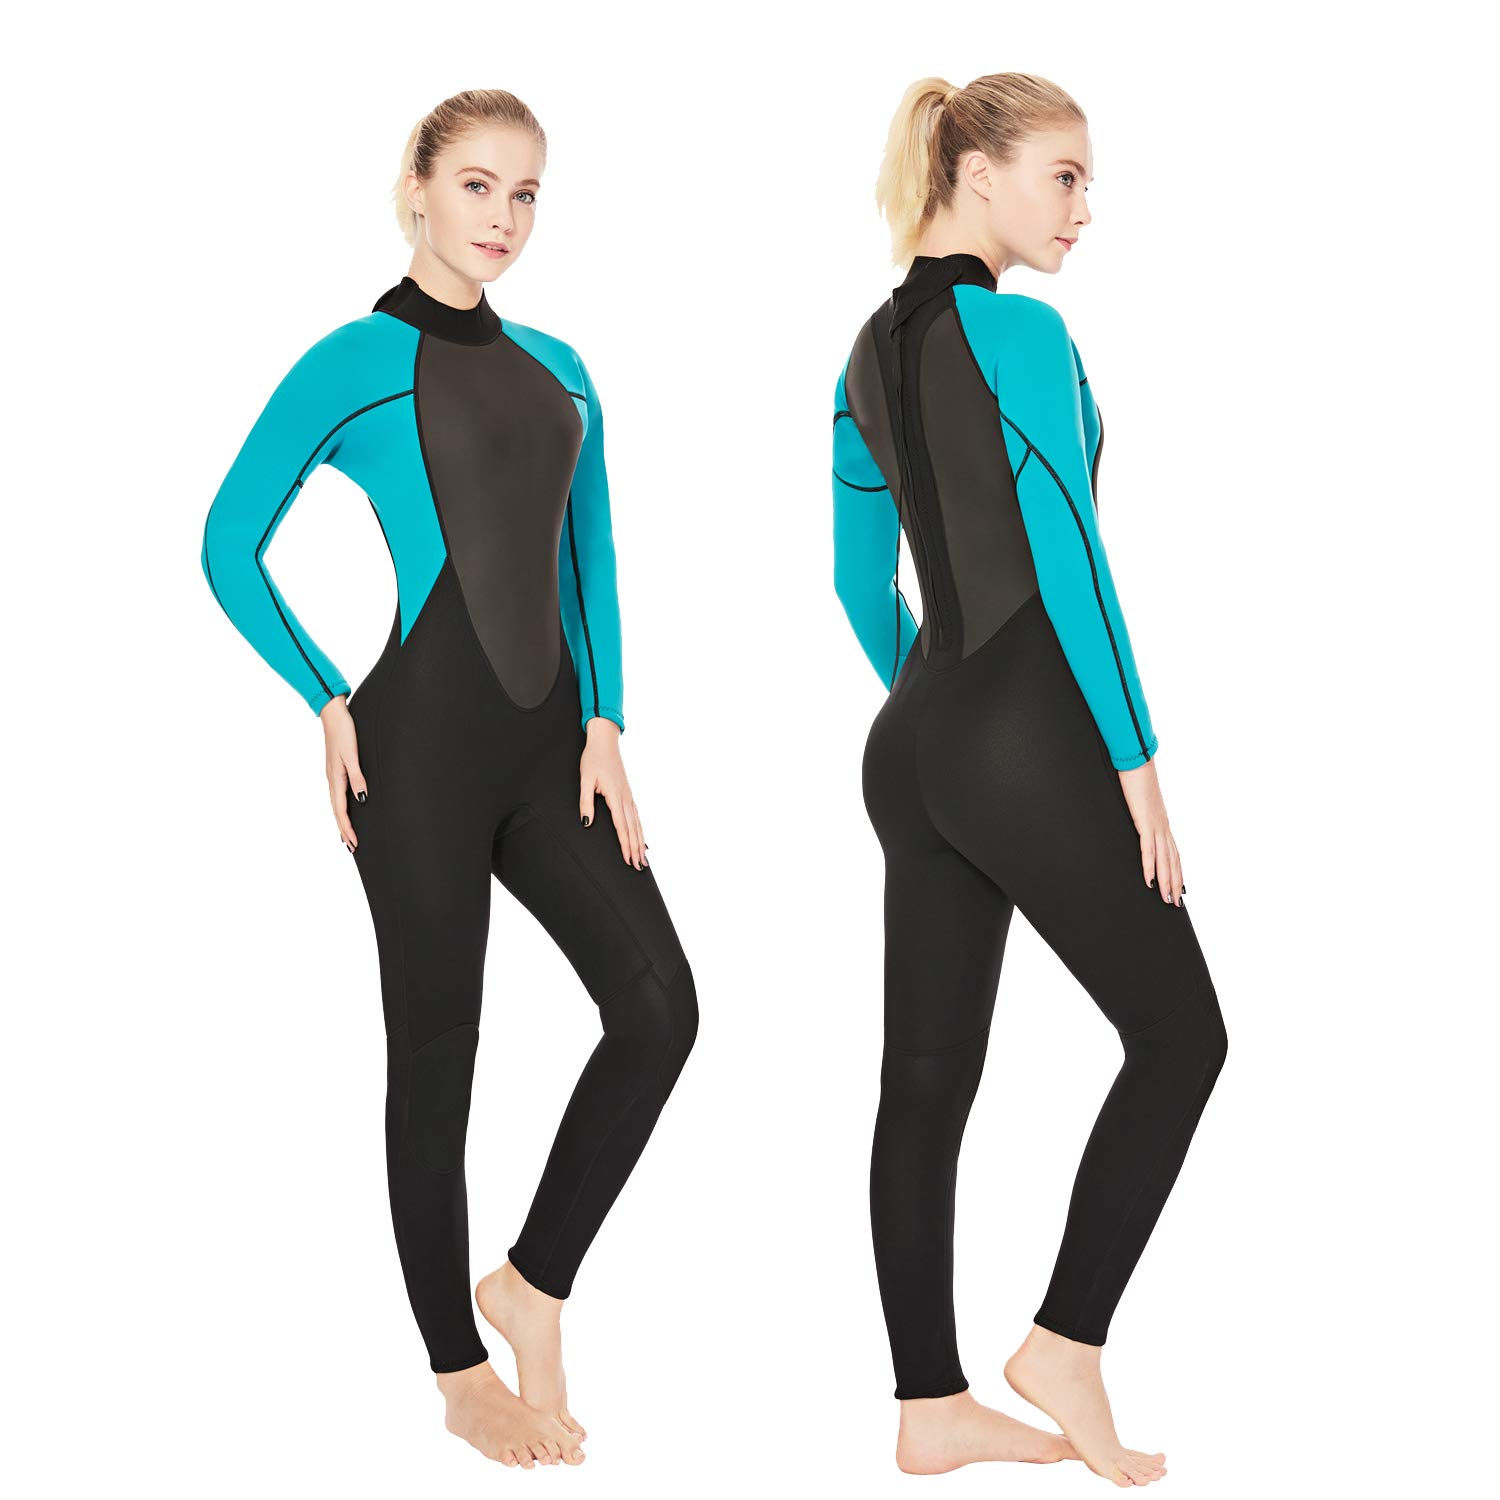 Realon Womens Wetsuit Full 3mm Neoprene One Piece Surfing Scuba Diving Snorkeling Swimming Suit (Black Blue 3mm, L) by Realon